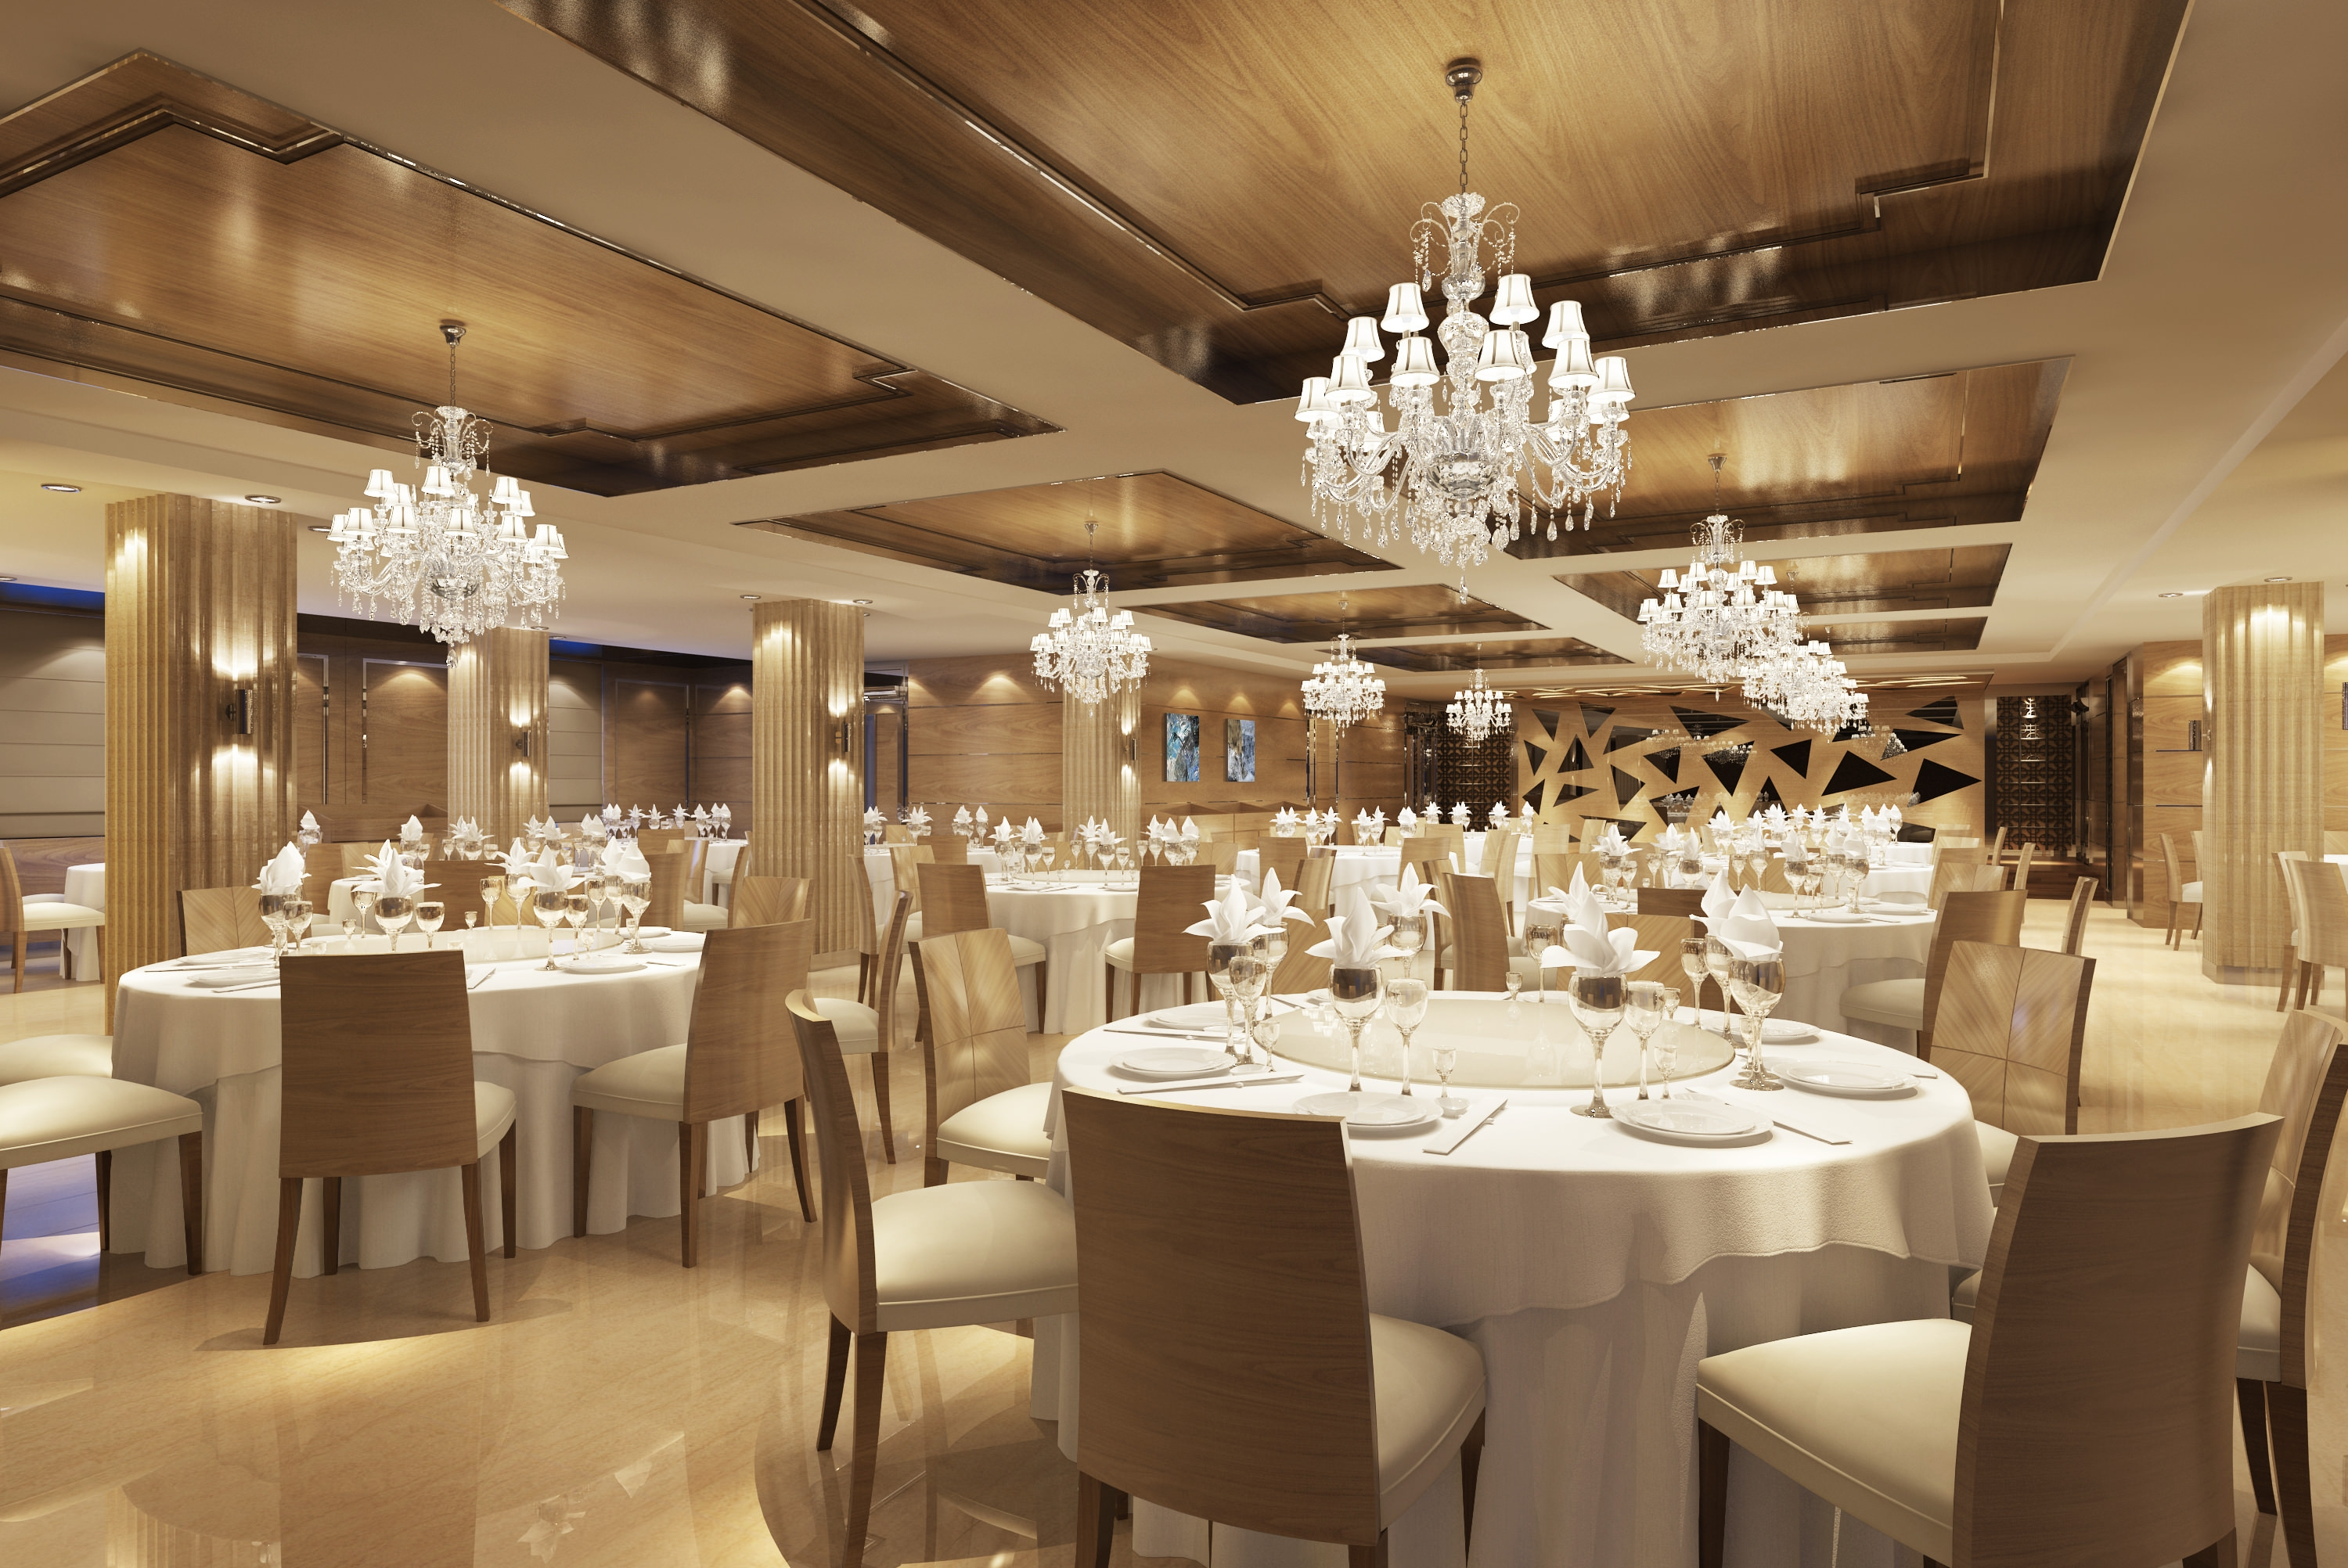 Classy Restaurant With Posh Chandeliers 3d Model Max Pertaining To Restaurant Chandeliers (Photo 2 of 15)